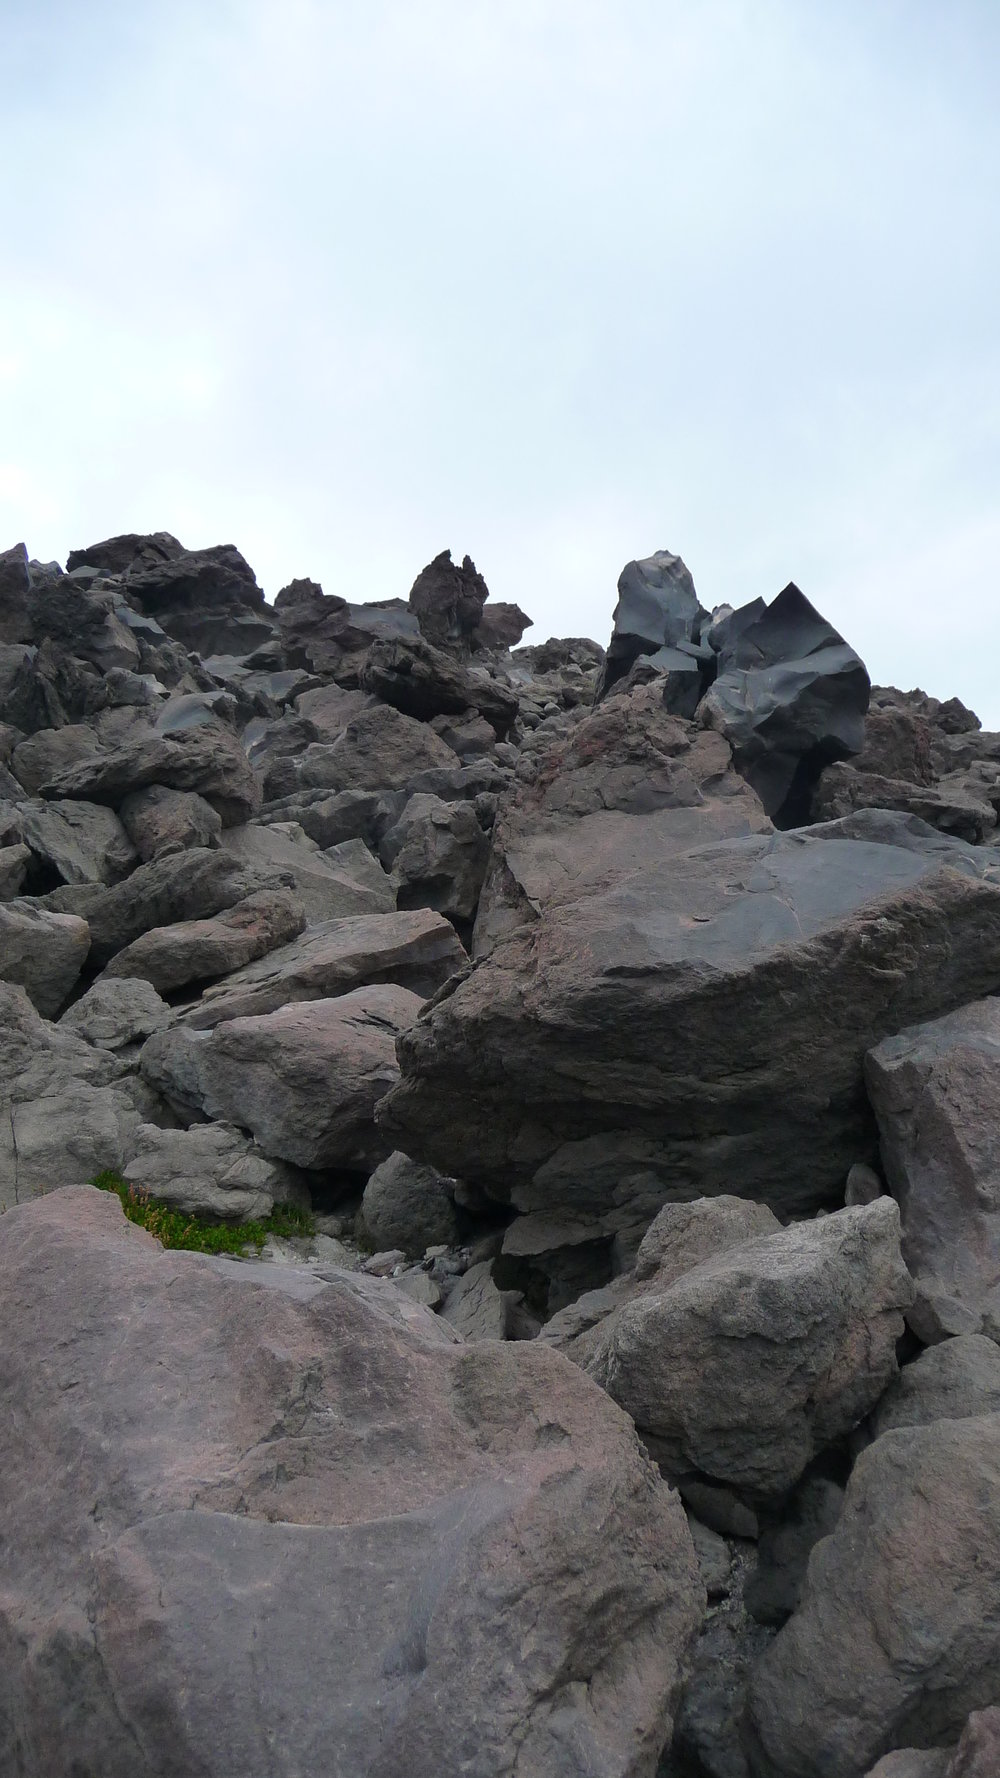 A snippet of the boulder field. When people say you climb St Helens, they're not kidding.